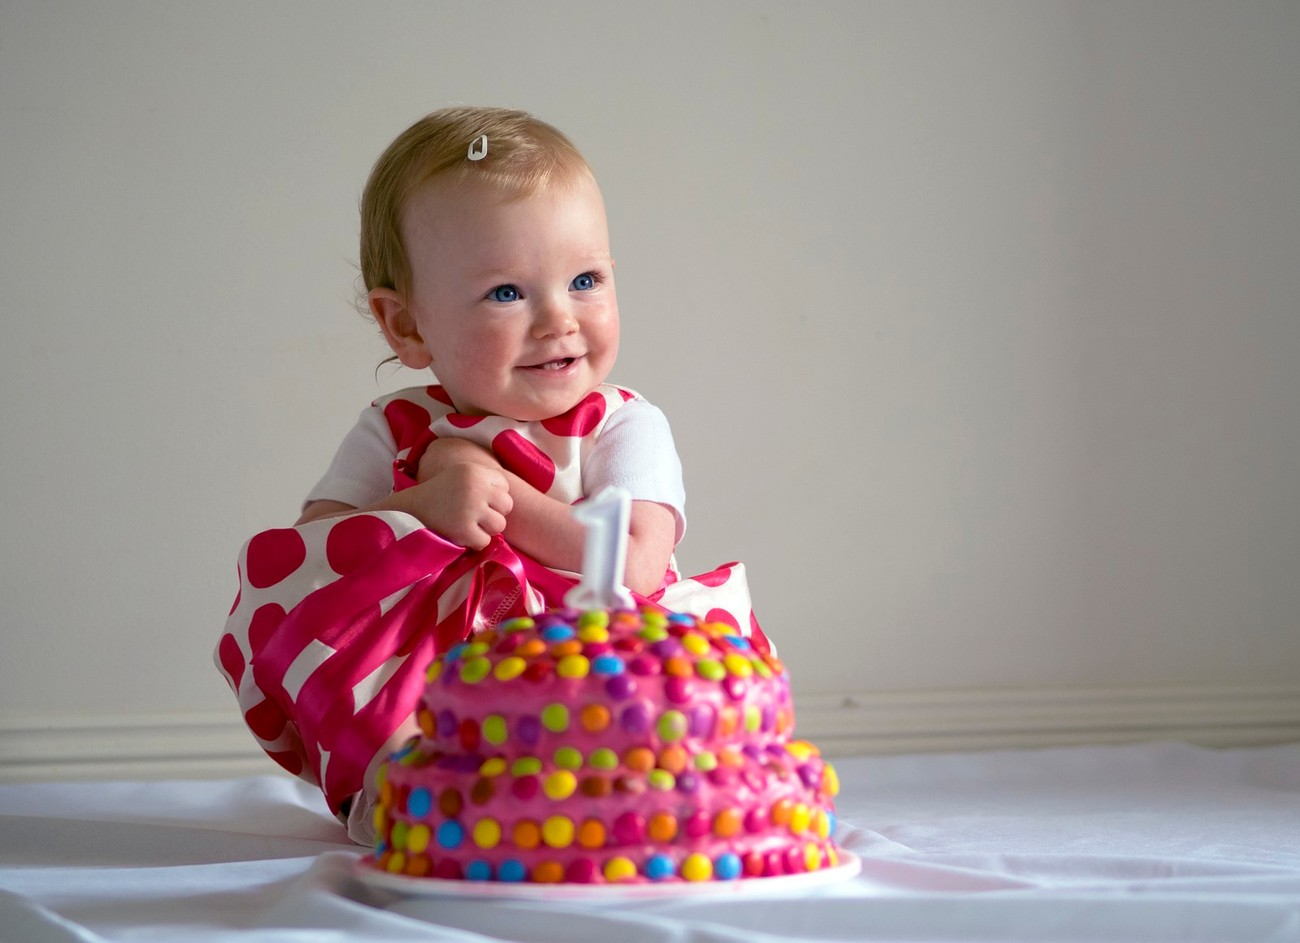 When you are happy about your first birthday cake